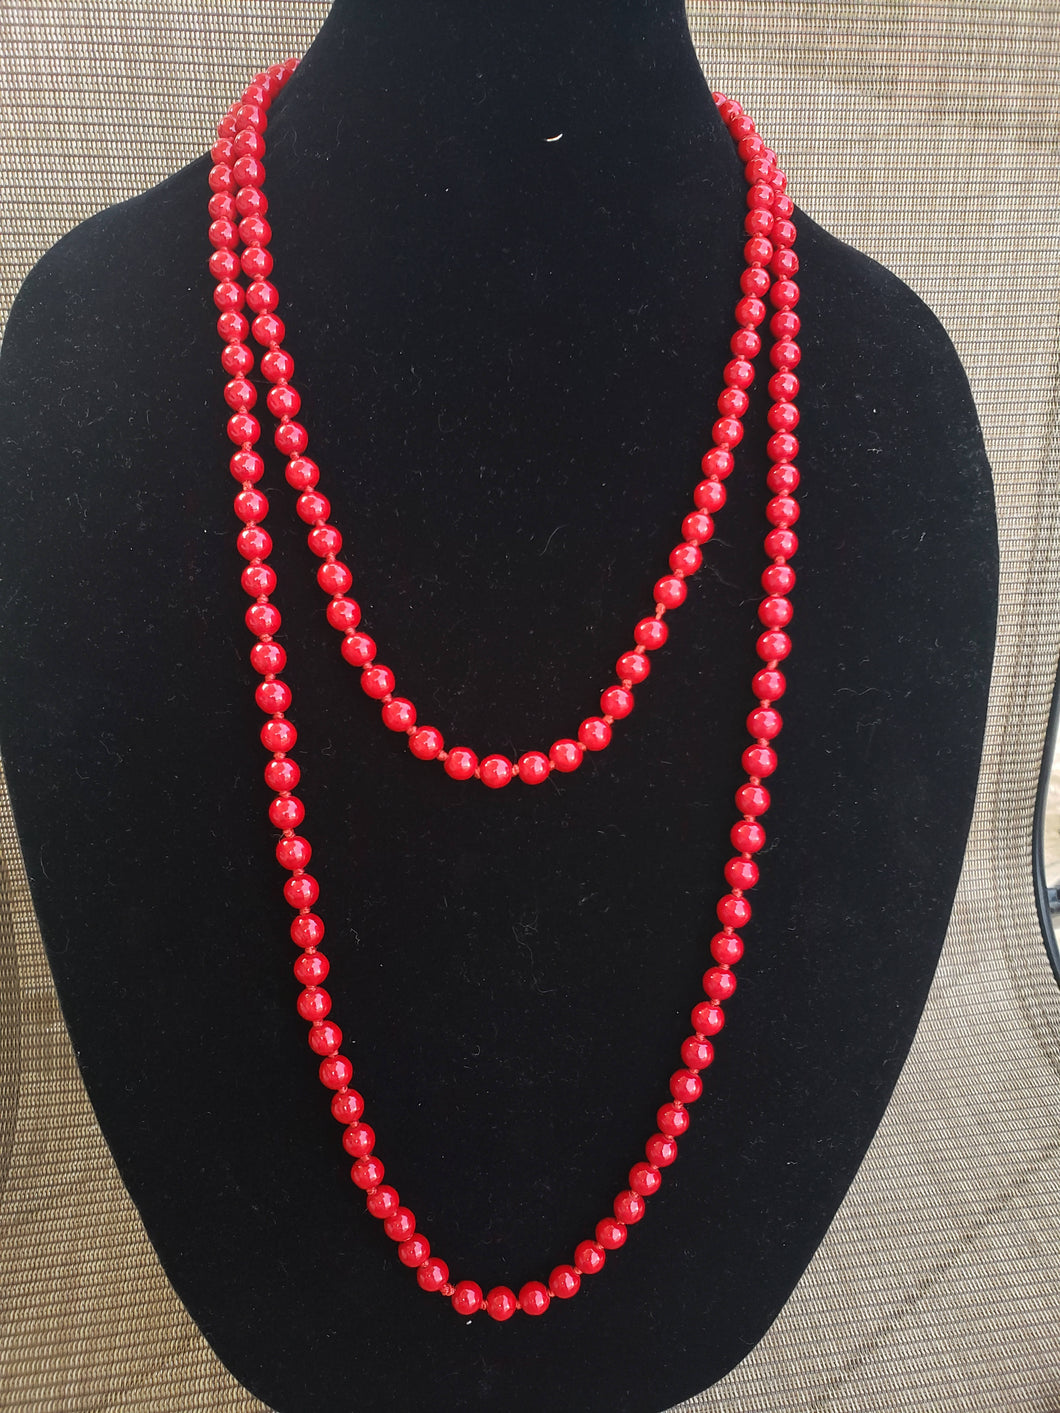 Red Coral Knotted Necklace-N8-60-0003